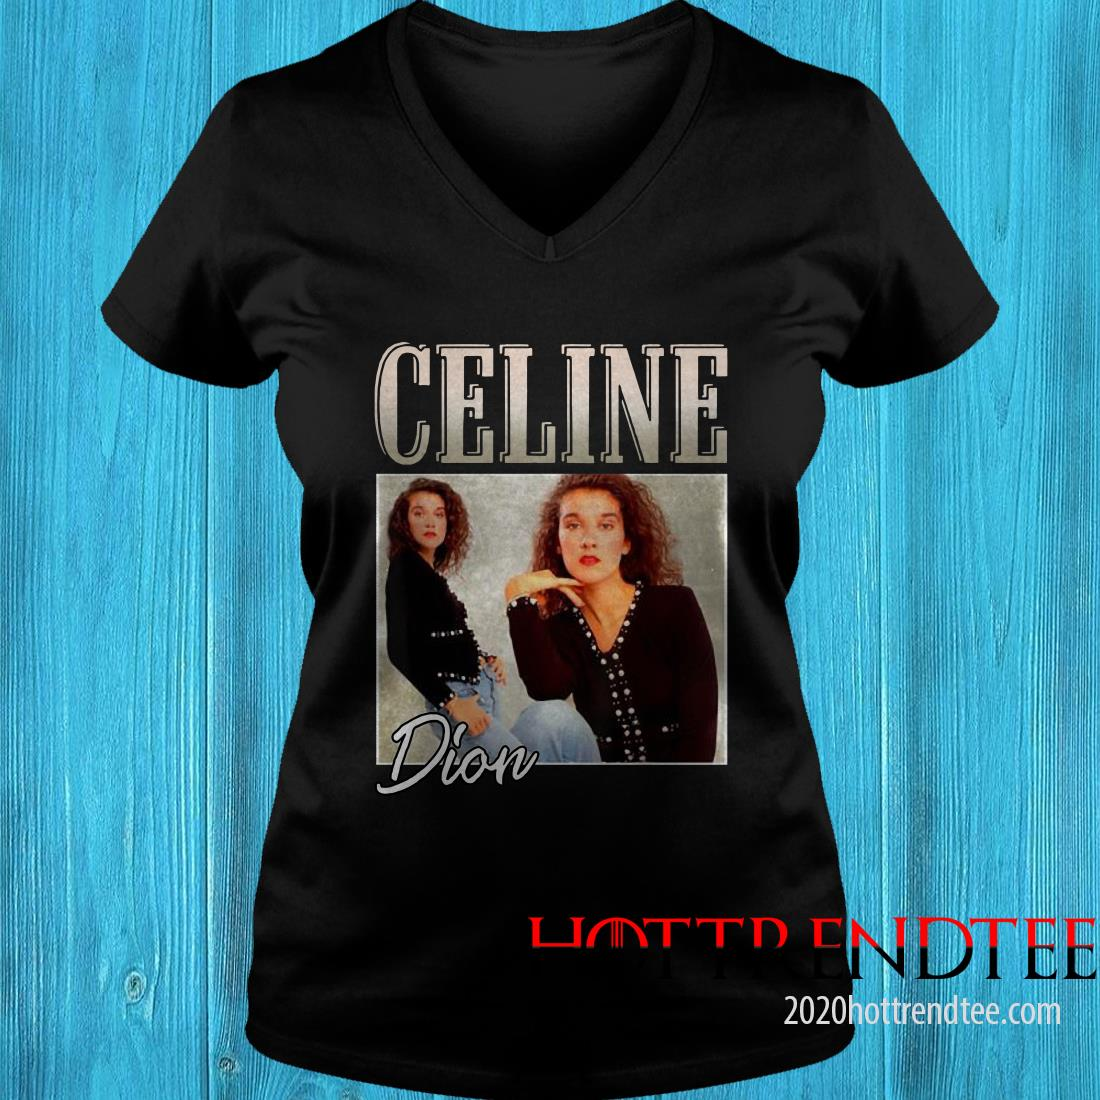 Retro Celine Shirts Dion Legends Live Forever Funny Musician Women's T-Shirt